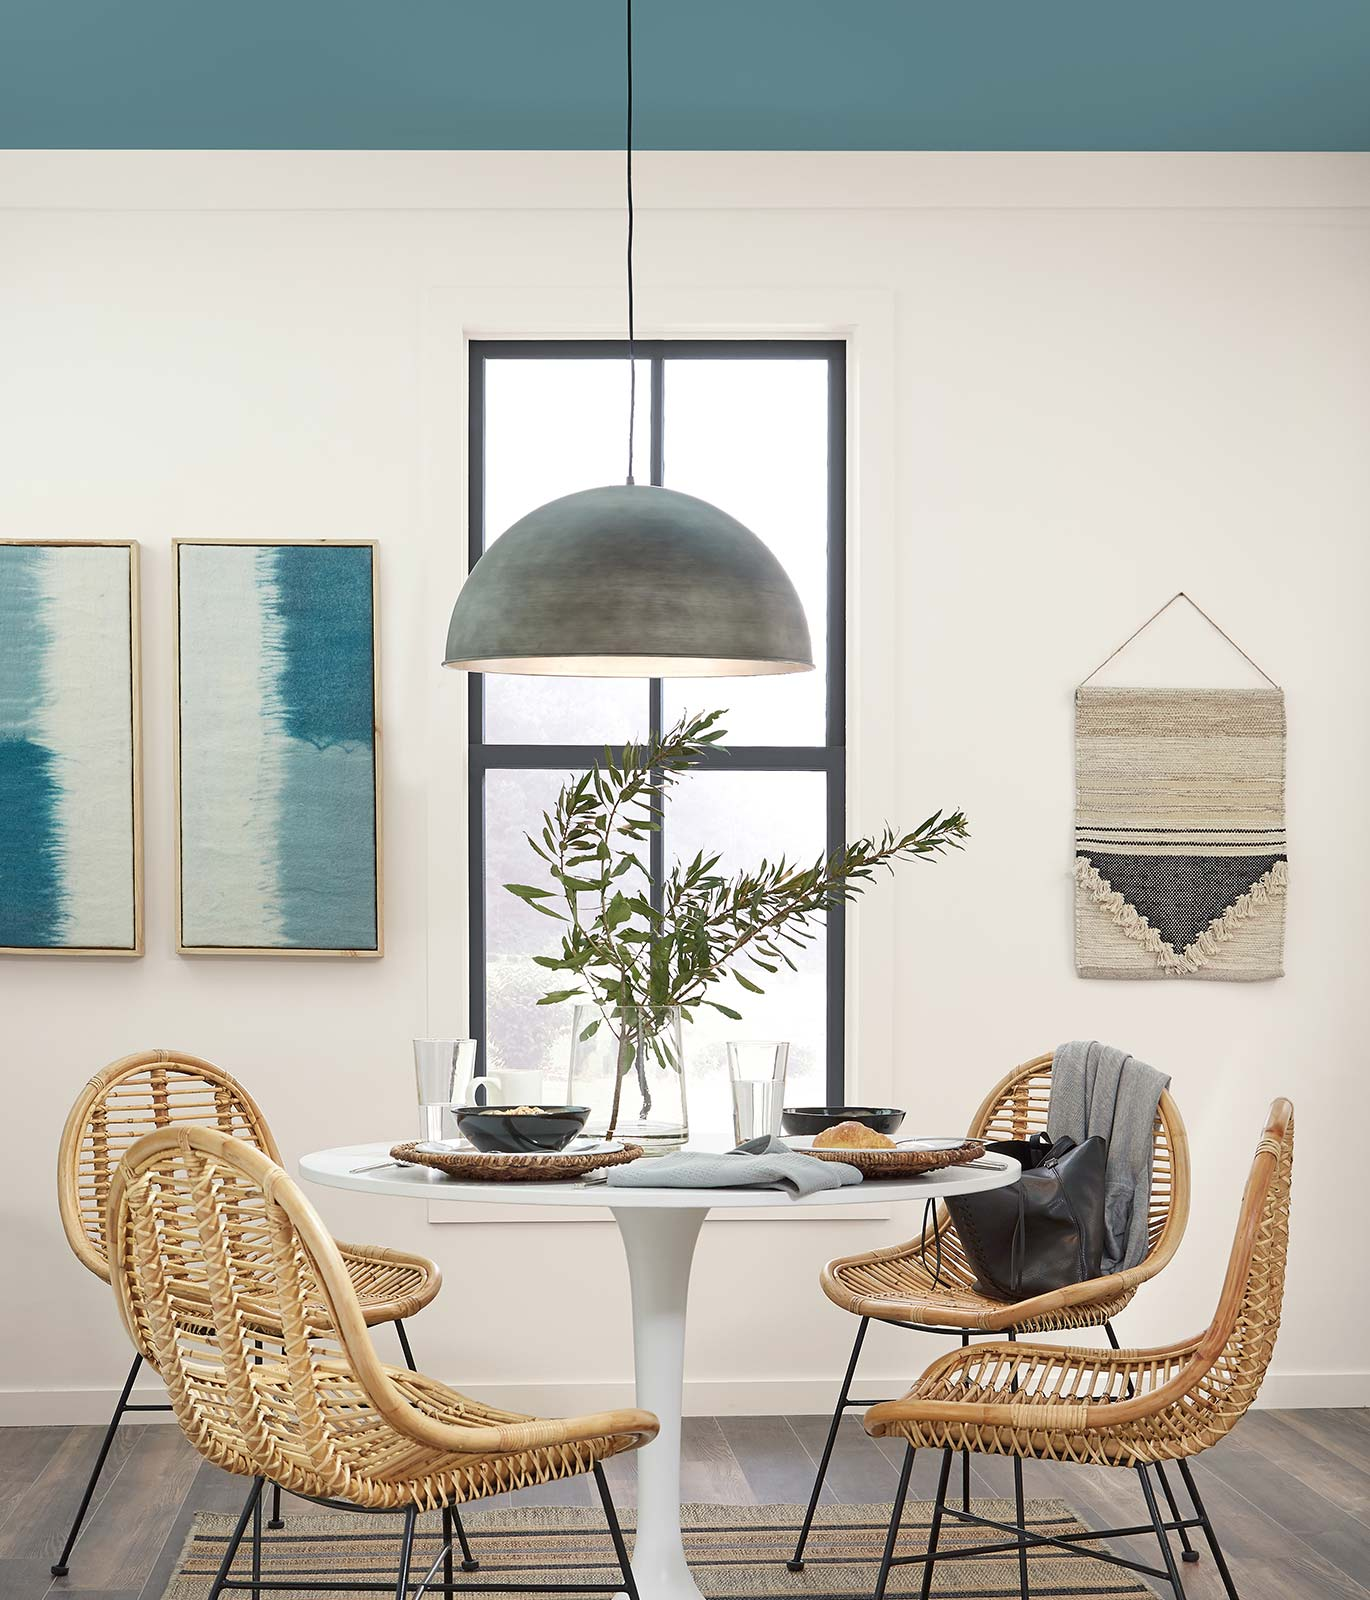 A casual dining area with a small round table and four rattan chairs surrounding it. Wall is painted in white with a blue painted ceiling. The atmosphere is relaxed and calm.